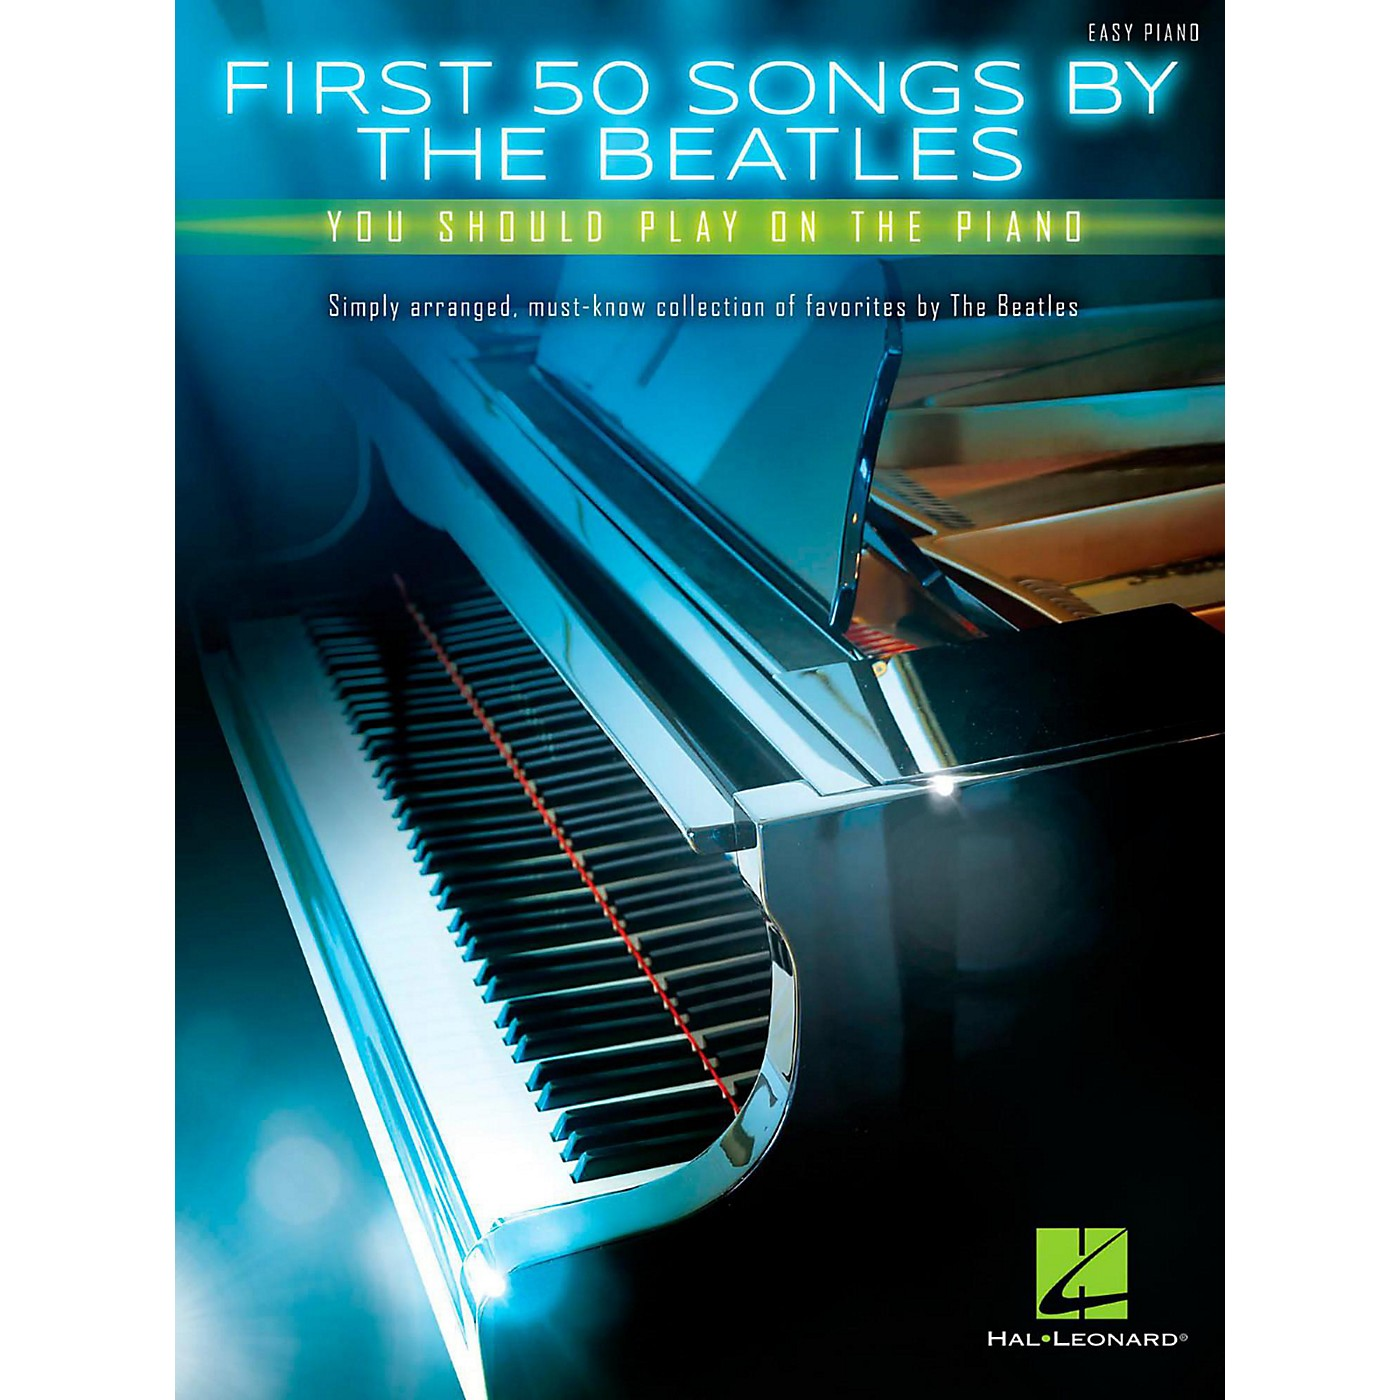 Hal Leonard First 50 Songs by the Beatles You Should Play on the Piano thumbnail